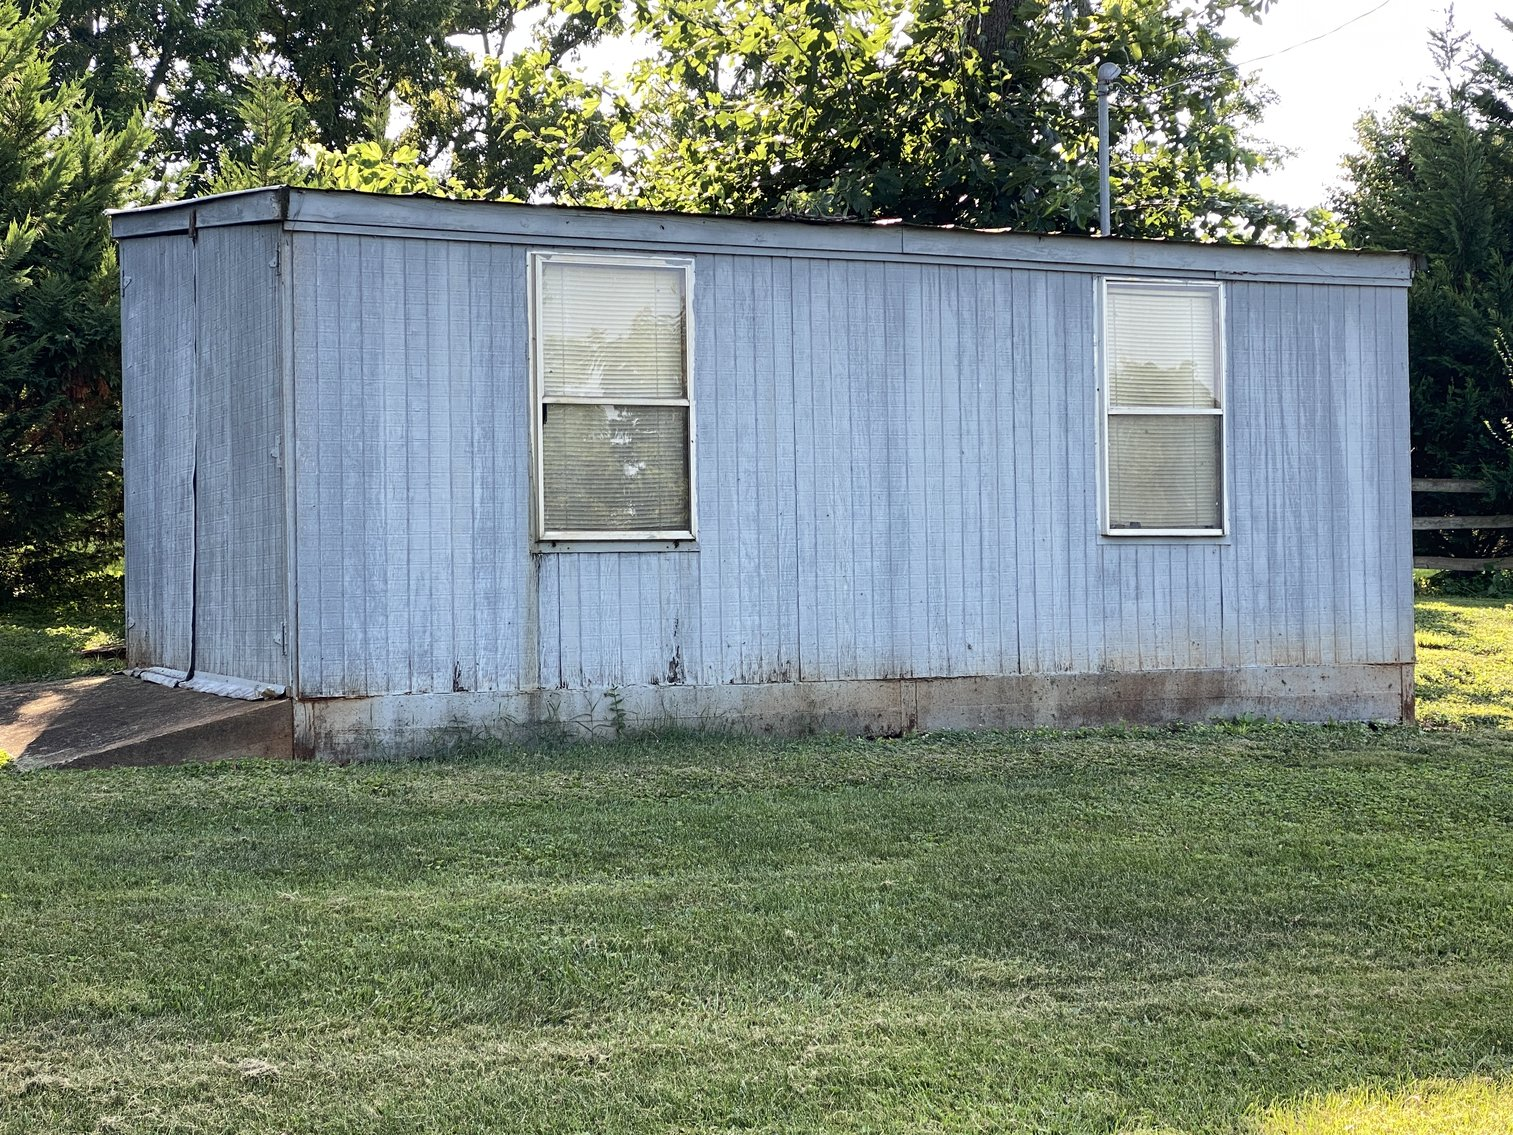 Image for 2 BR/1 BA Home on .5 +/- Acre Lot in the Heart of Orange County, VA